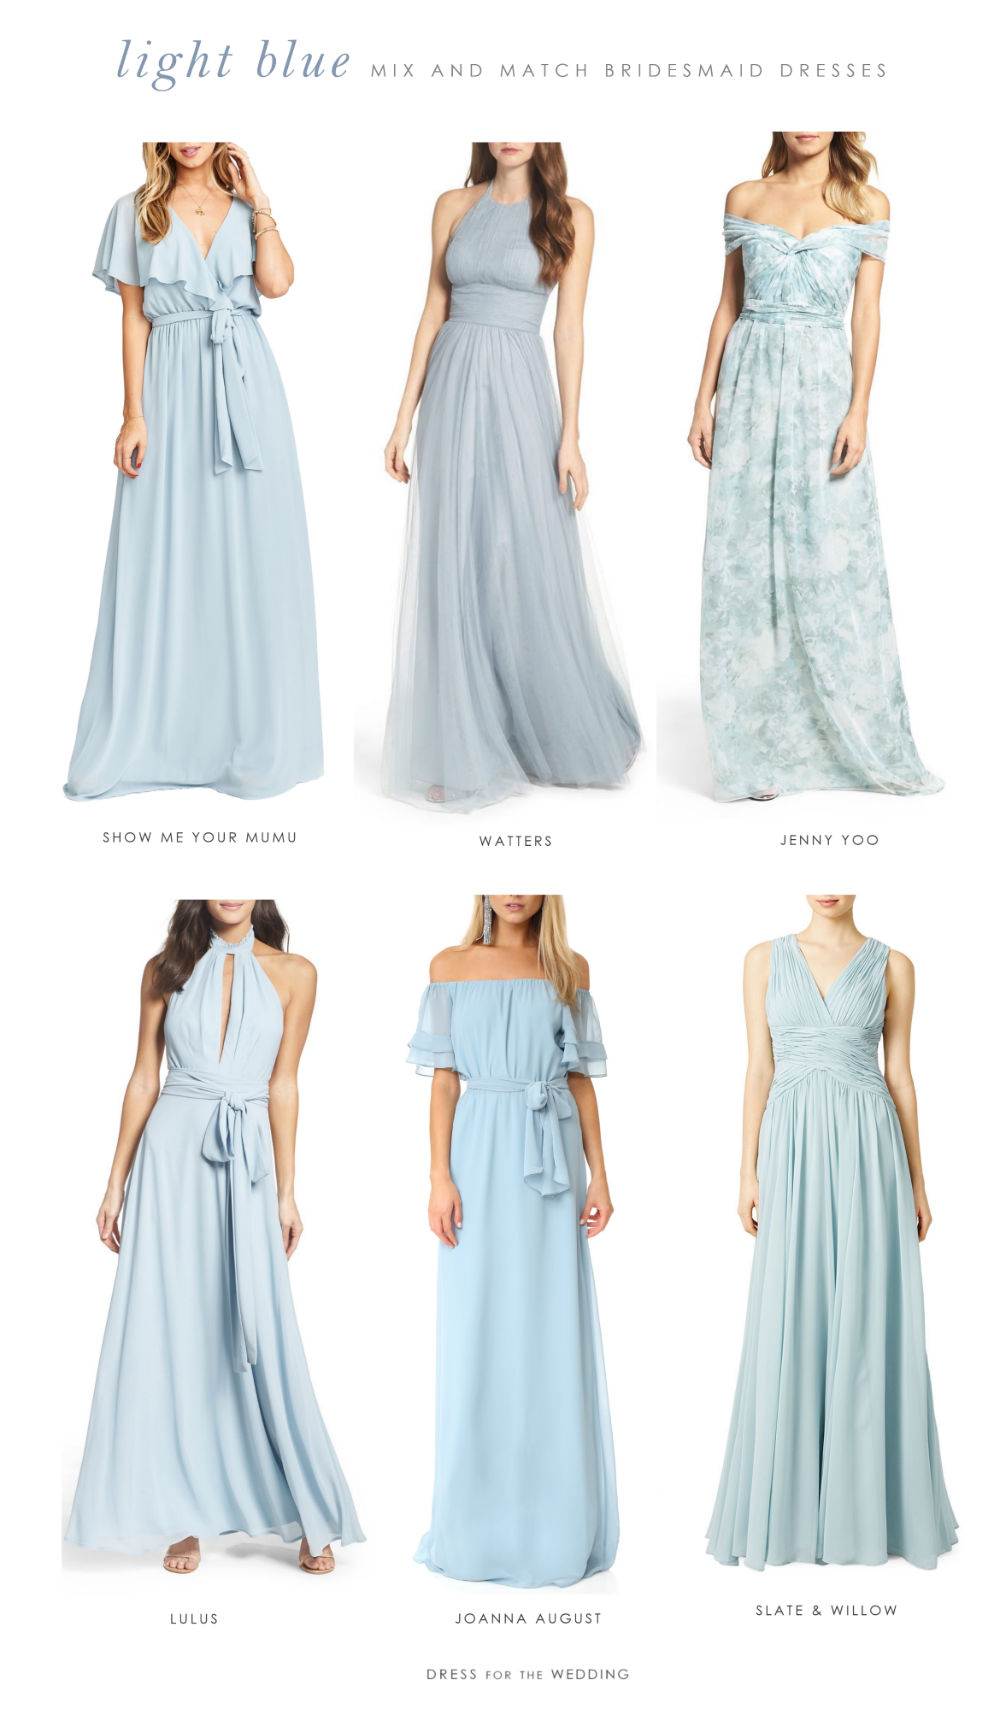 Light blue mix and match bridesmaid dresses dress for the wedding how to mix and match light blue bridesmaid dresses ombrellifo Gallery